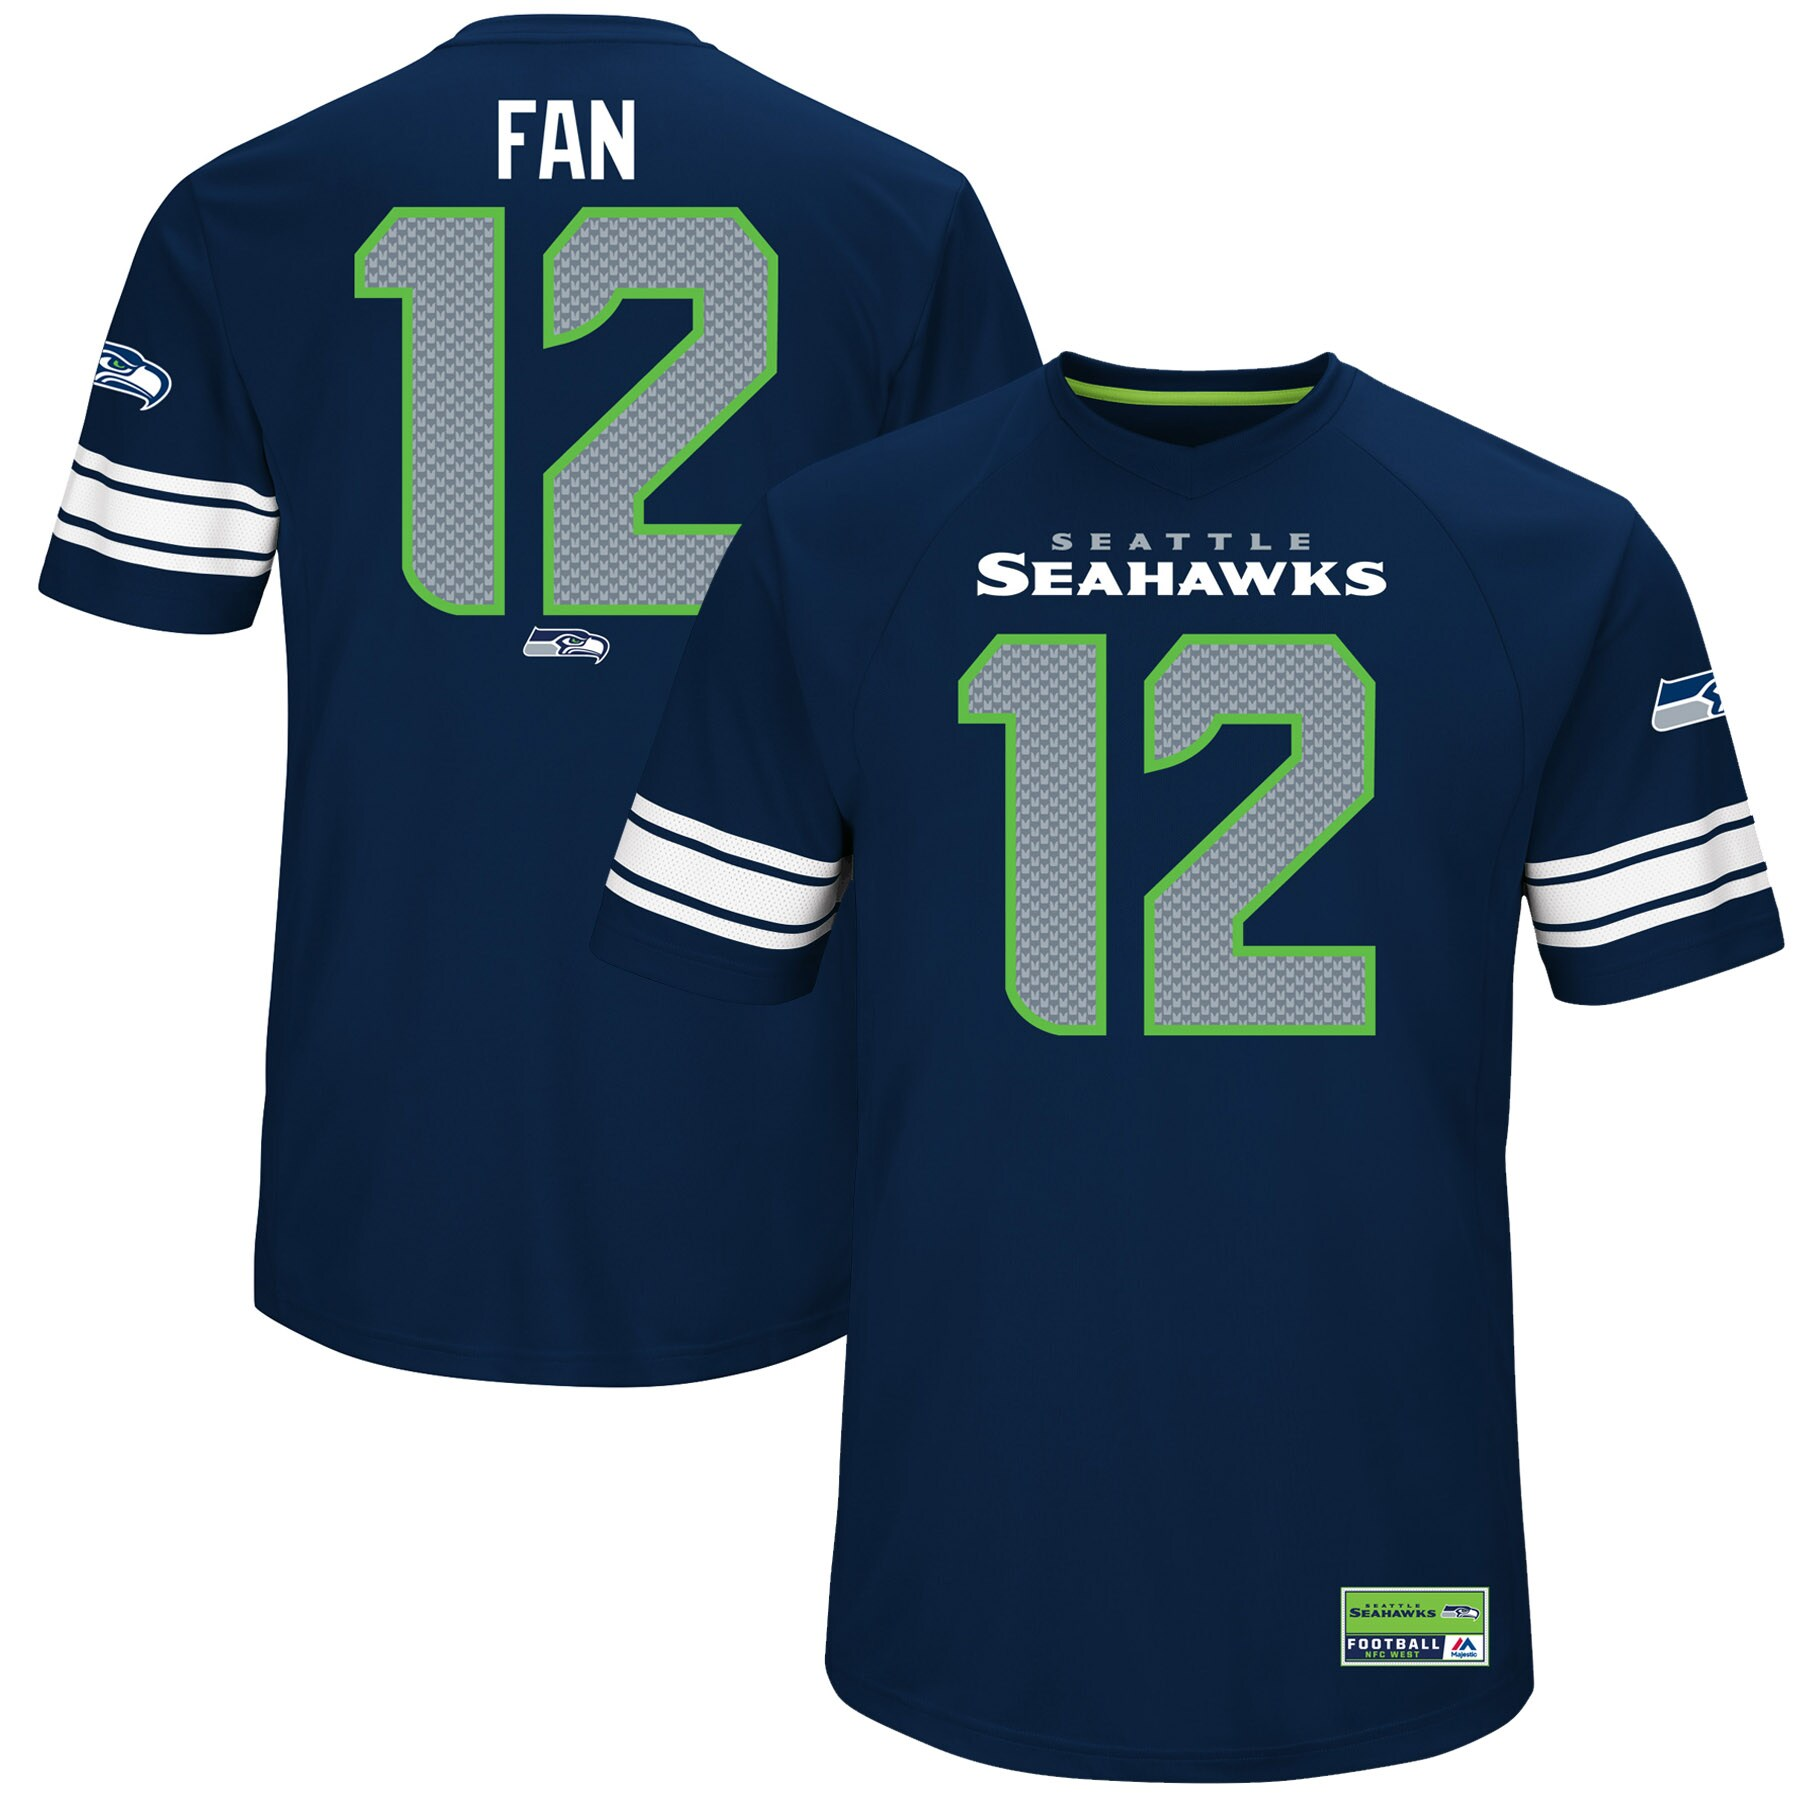 12s Seattle Seahawks Majestic Hashmark Player Name & Number T-Shirt - College Navy